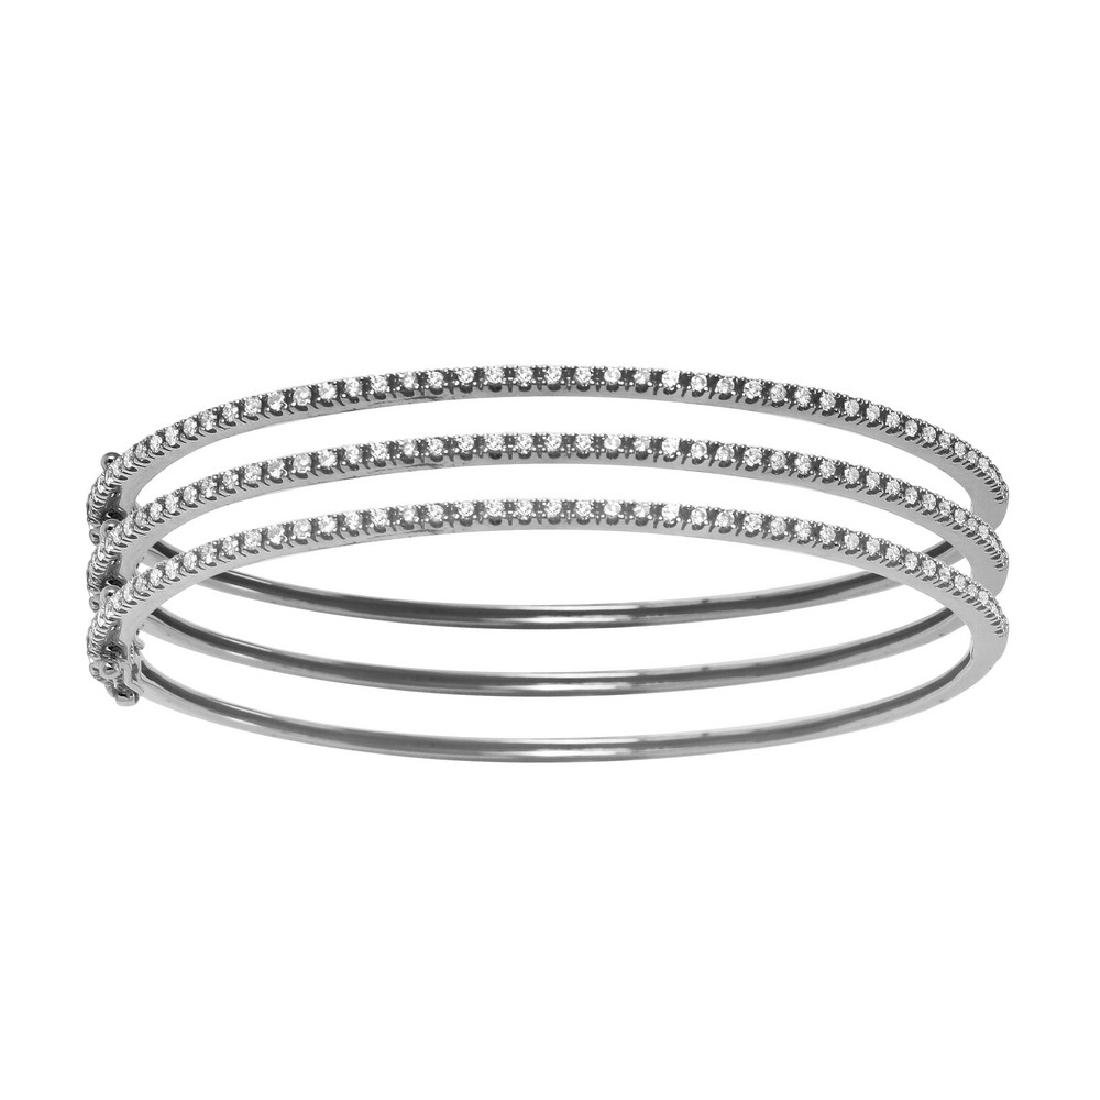 0.52CTW Diamond Bangle Bracelet in 14K White Gold